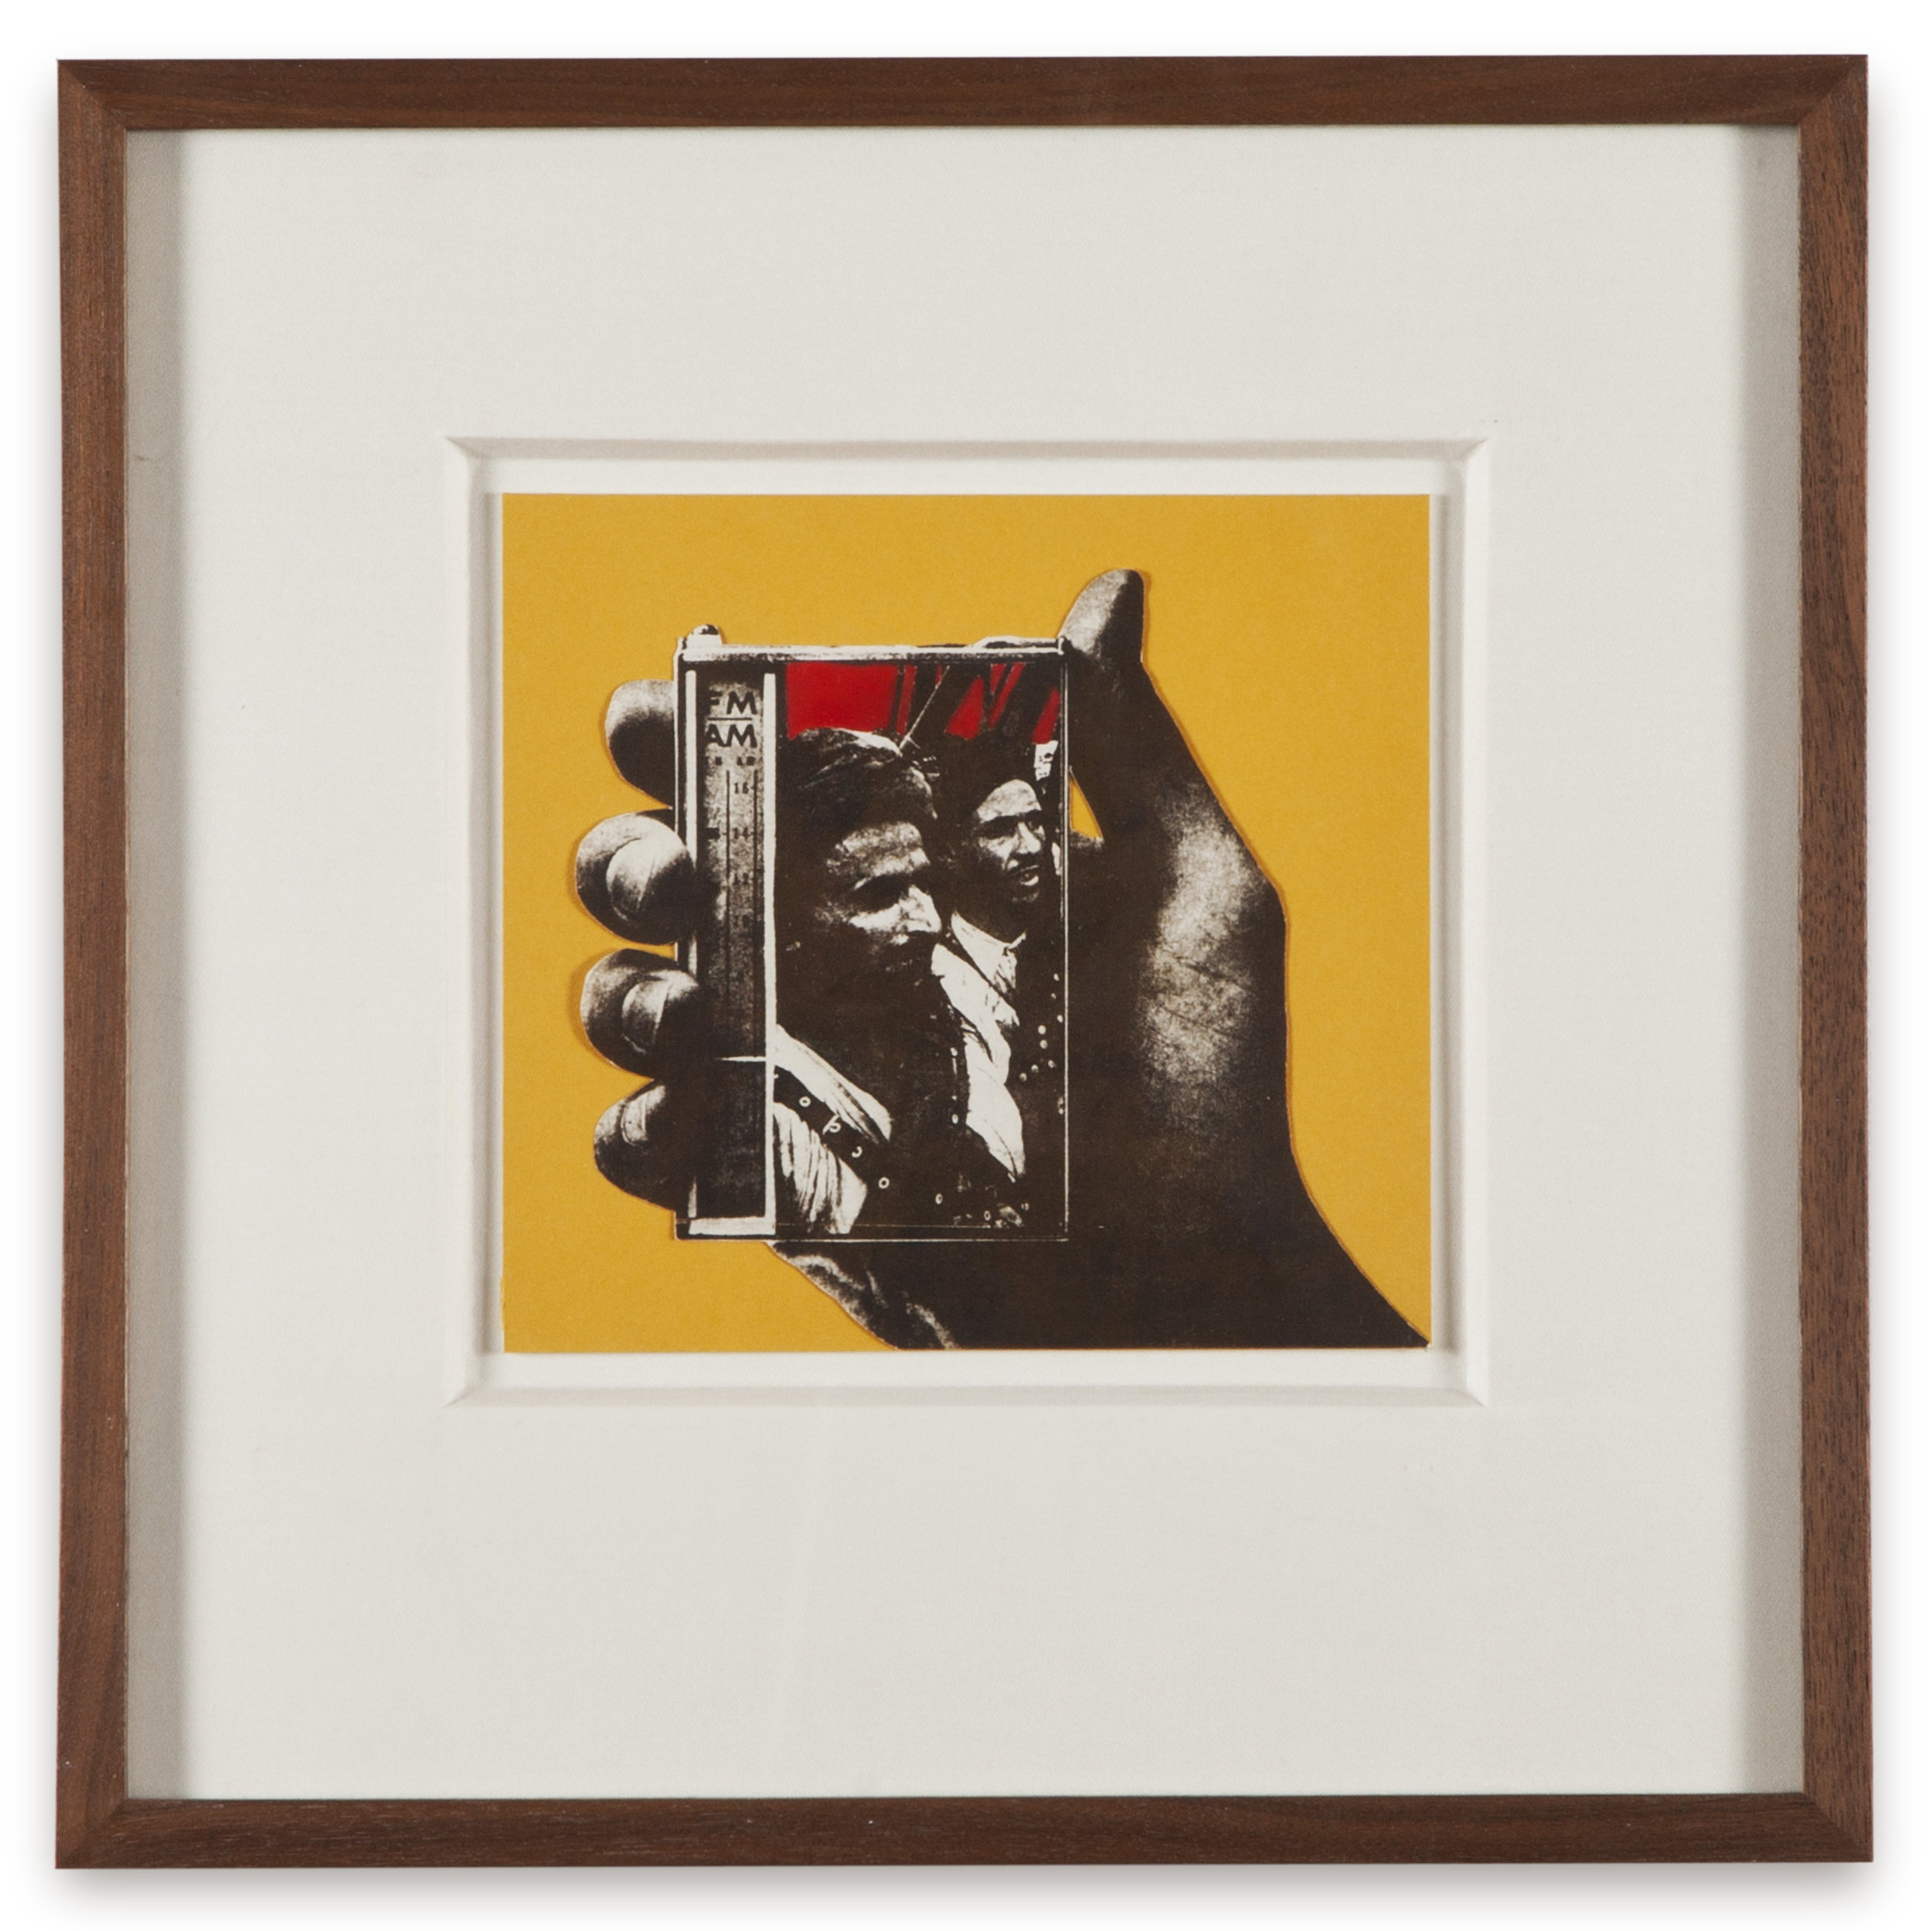 "Copy of ""Untitled #123"" , c. 1964-76, Verifax collage with acrylic, 6 x 6 1/2 inches, framed 12 x 12 1/2 inches"